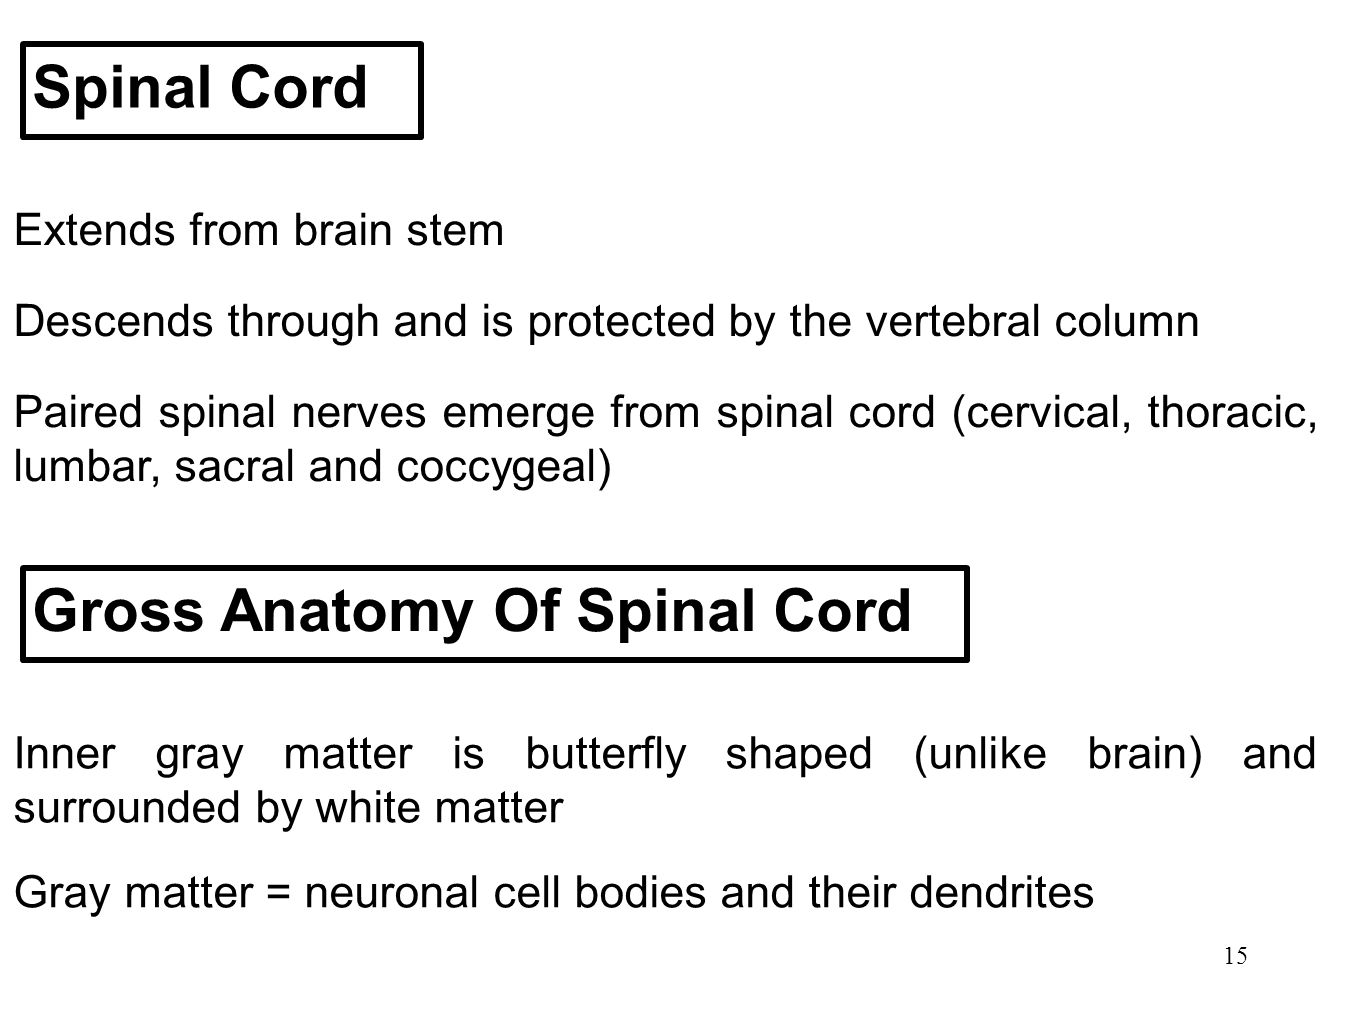 Gross Anatomy Of Spinal Cord